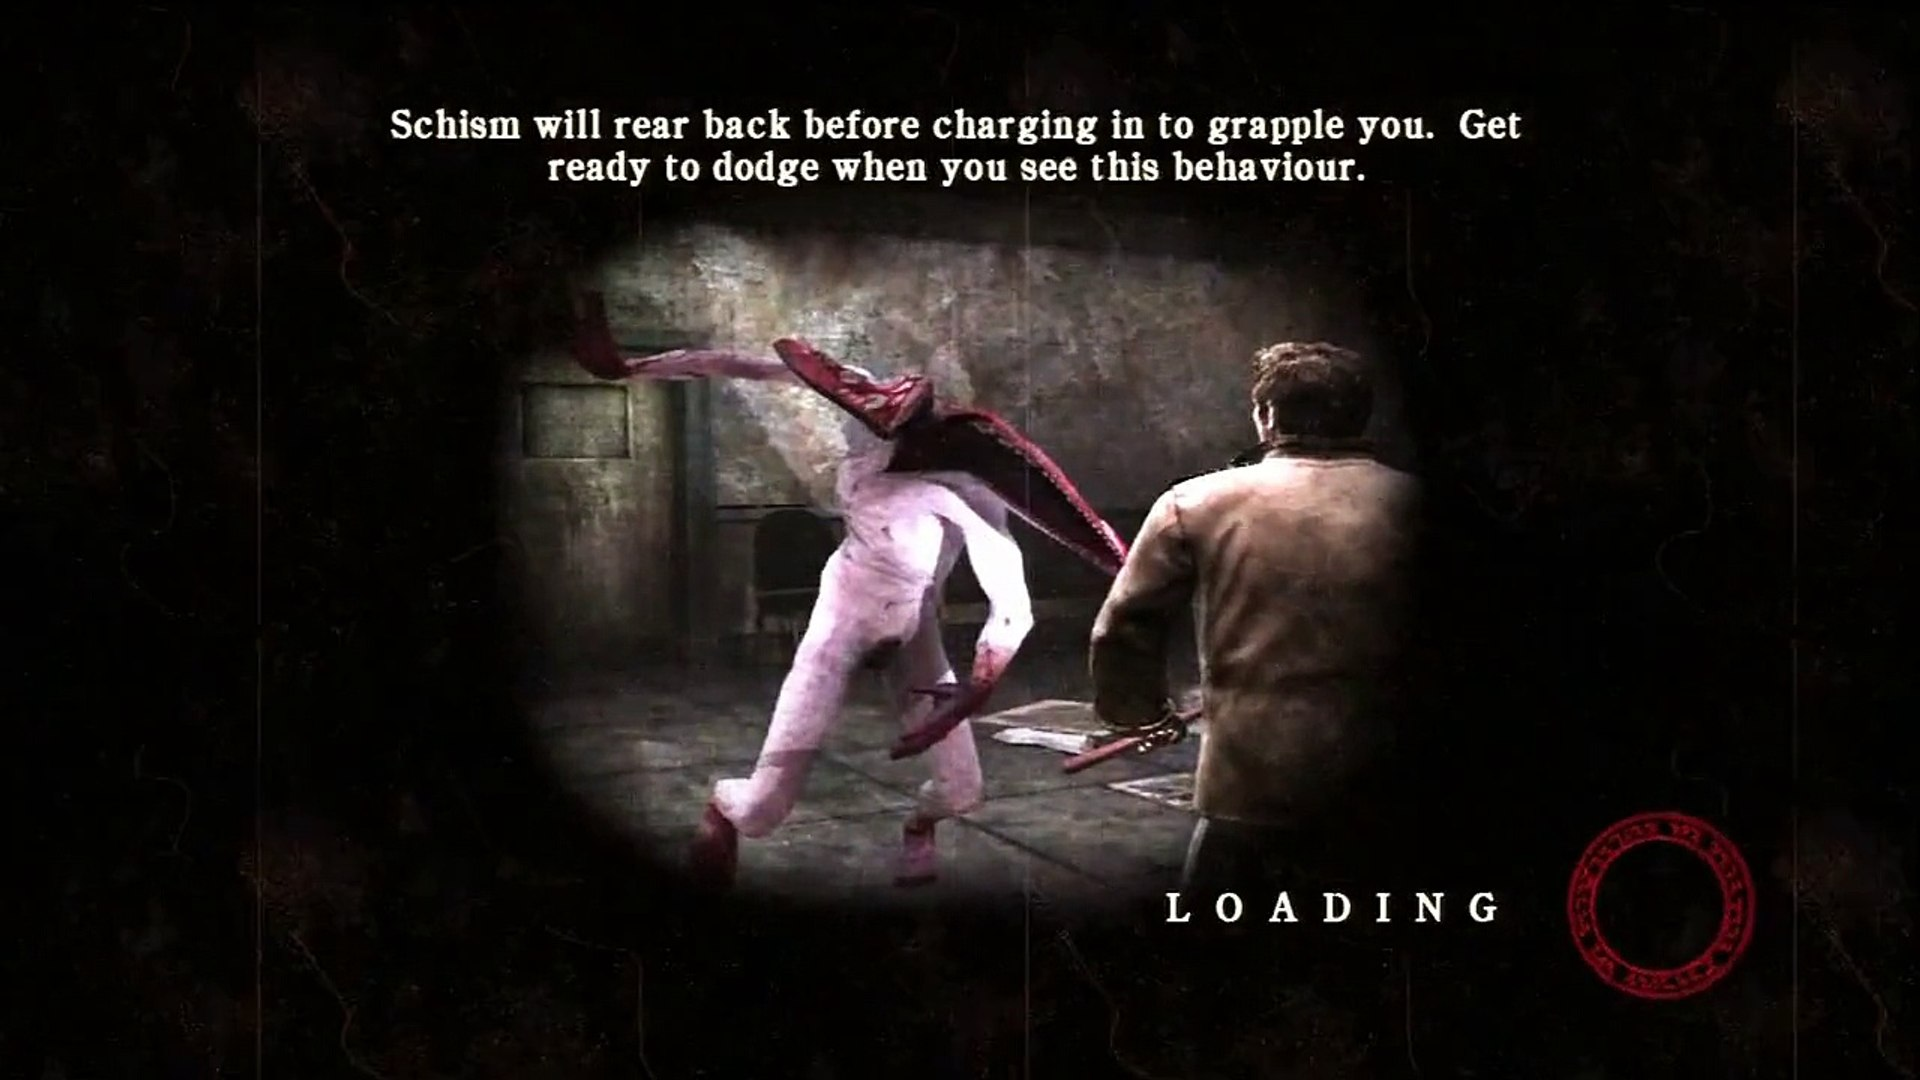 Silent Hill Homecoming HD The Schism Soldiers & The Sewer P23